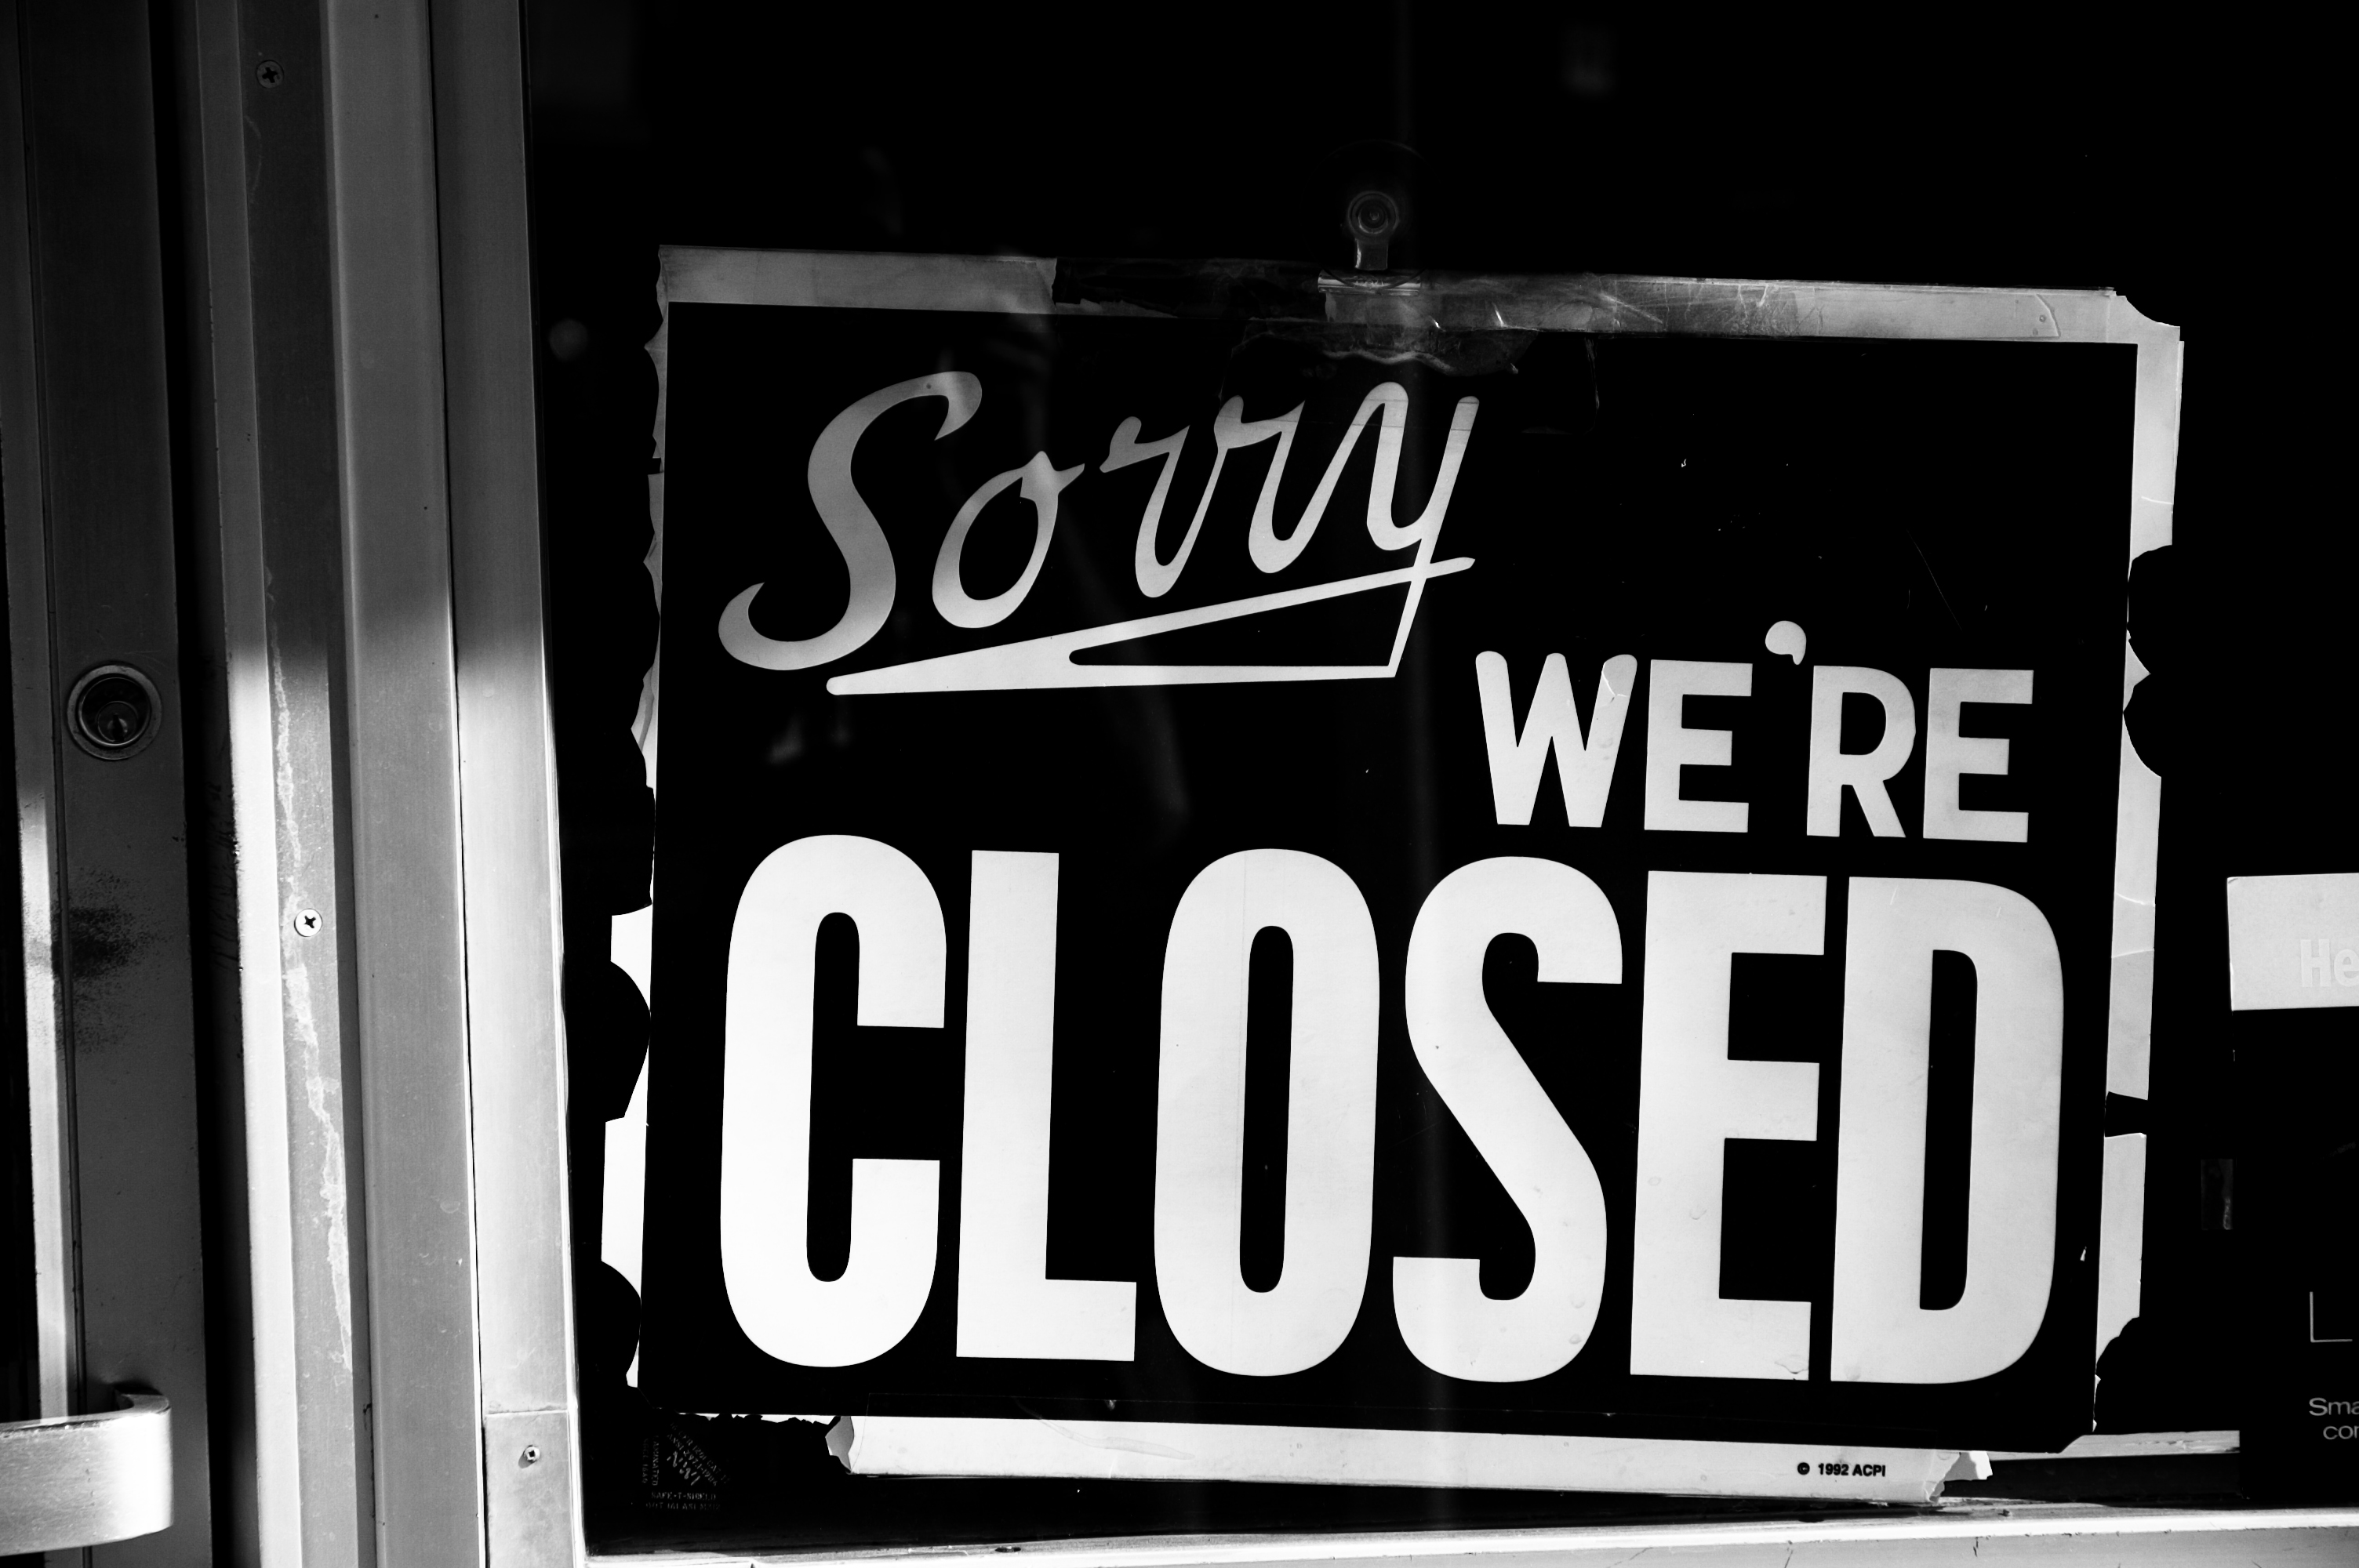 CLOSED sign text word (8)